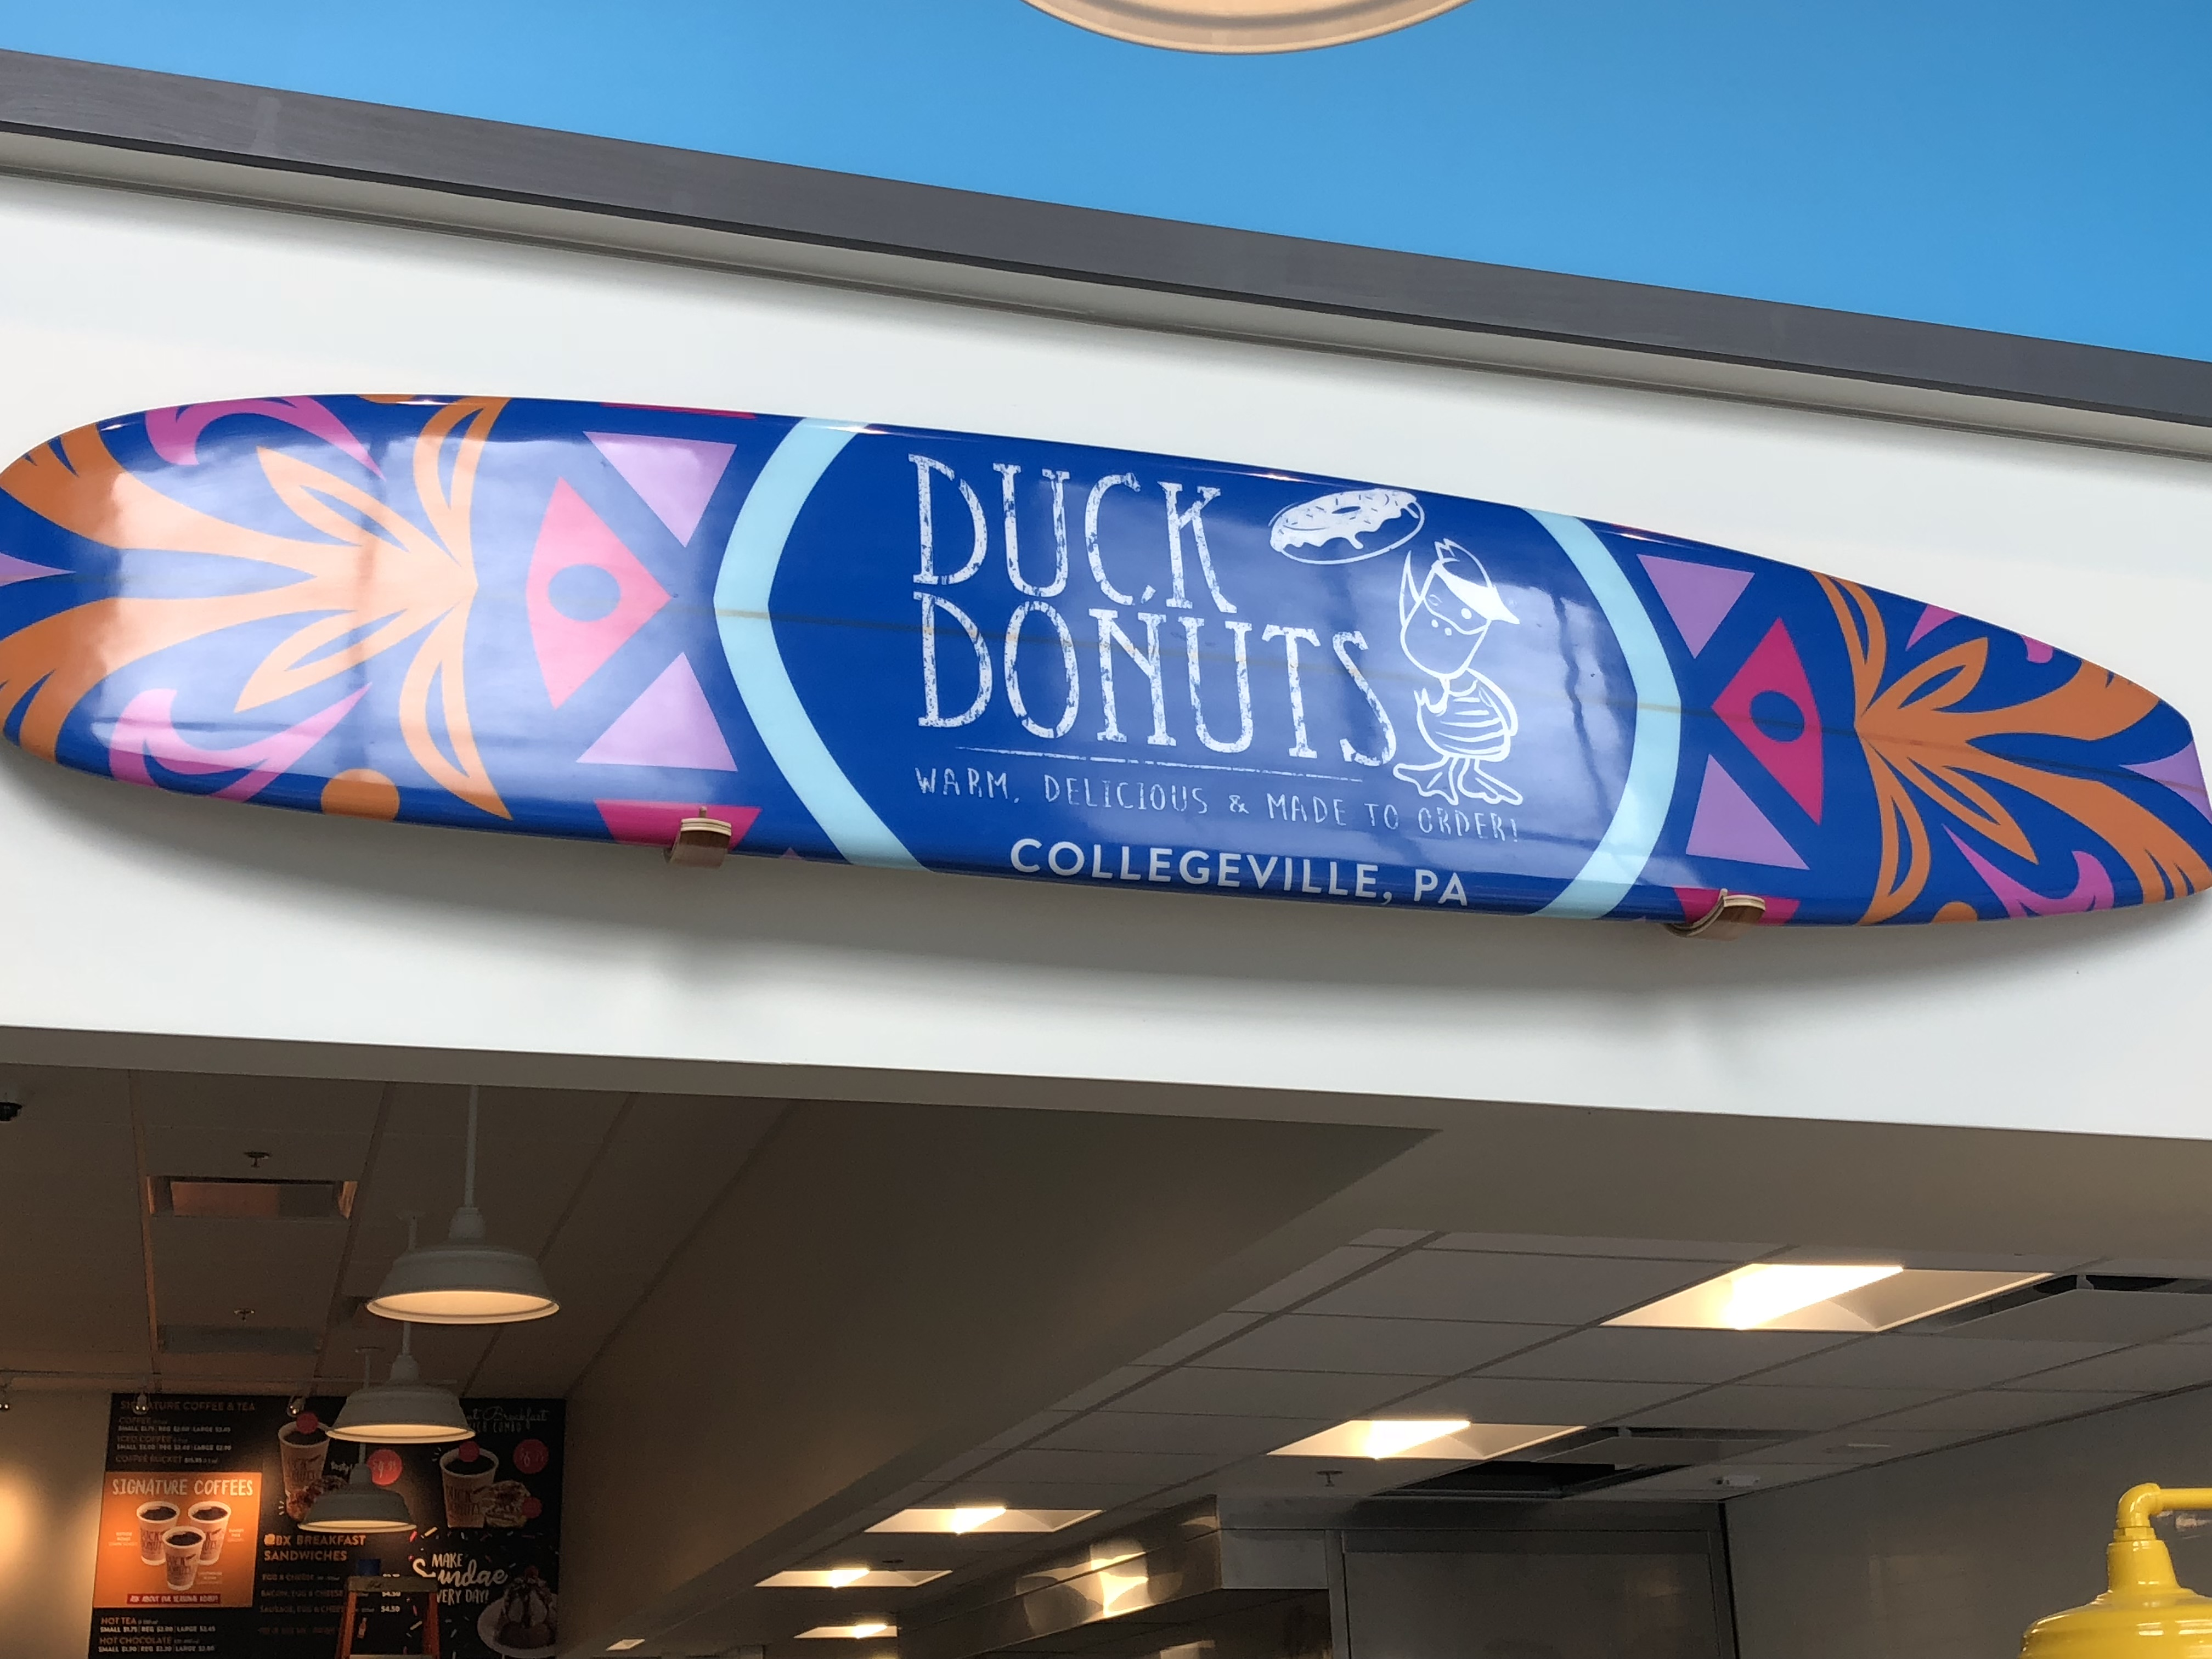 Duck Donuts announces opening of newest location in Collegeville